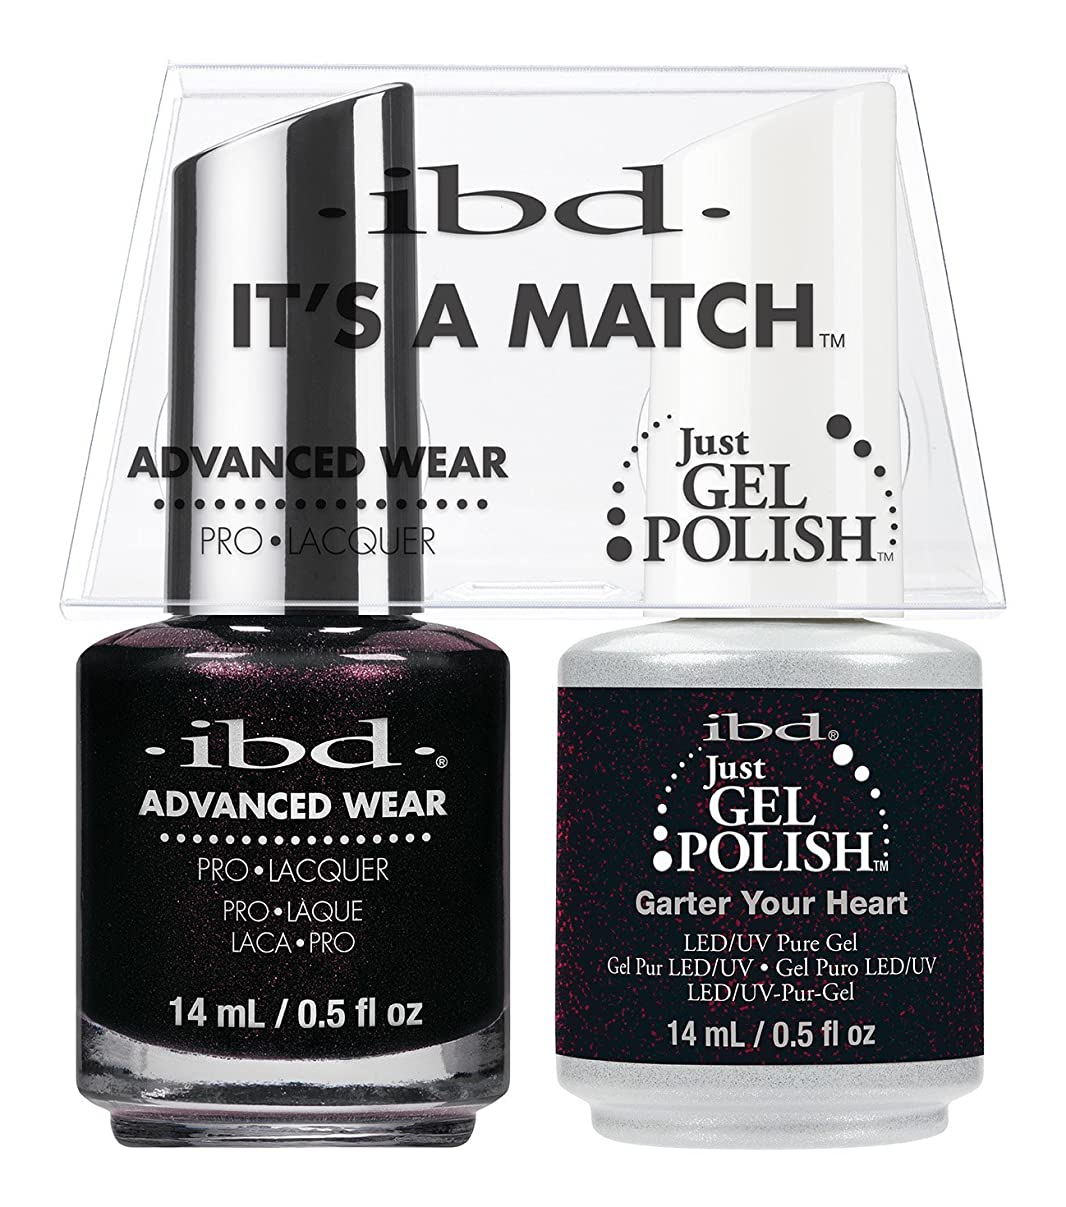 困惑した考えたロードハウスibd - It's A Match -Duo Pack- Garter Your Heart - 14 mL / 0.5 oz Each